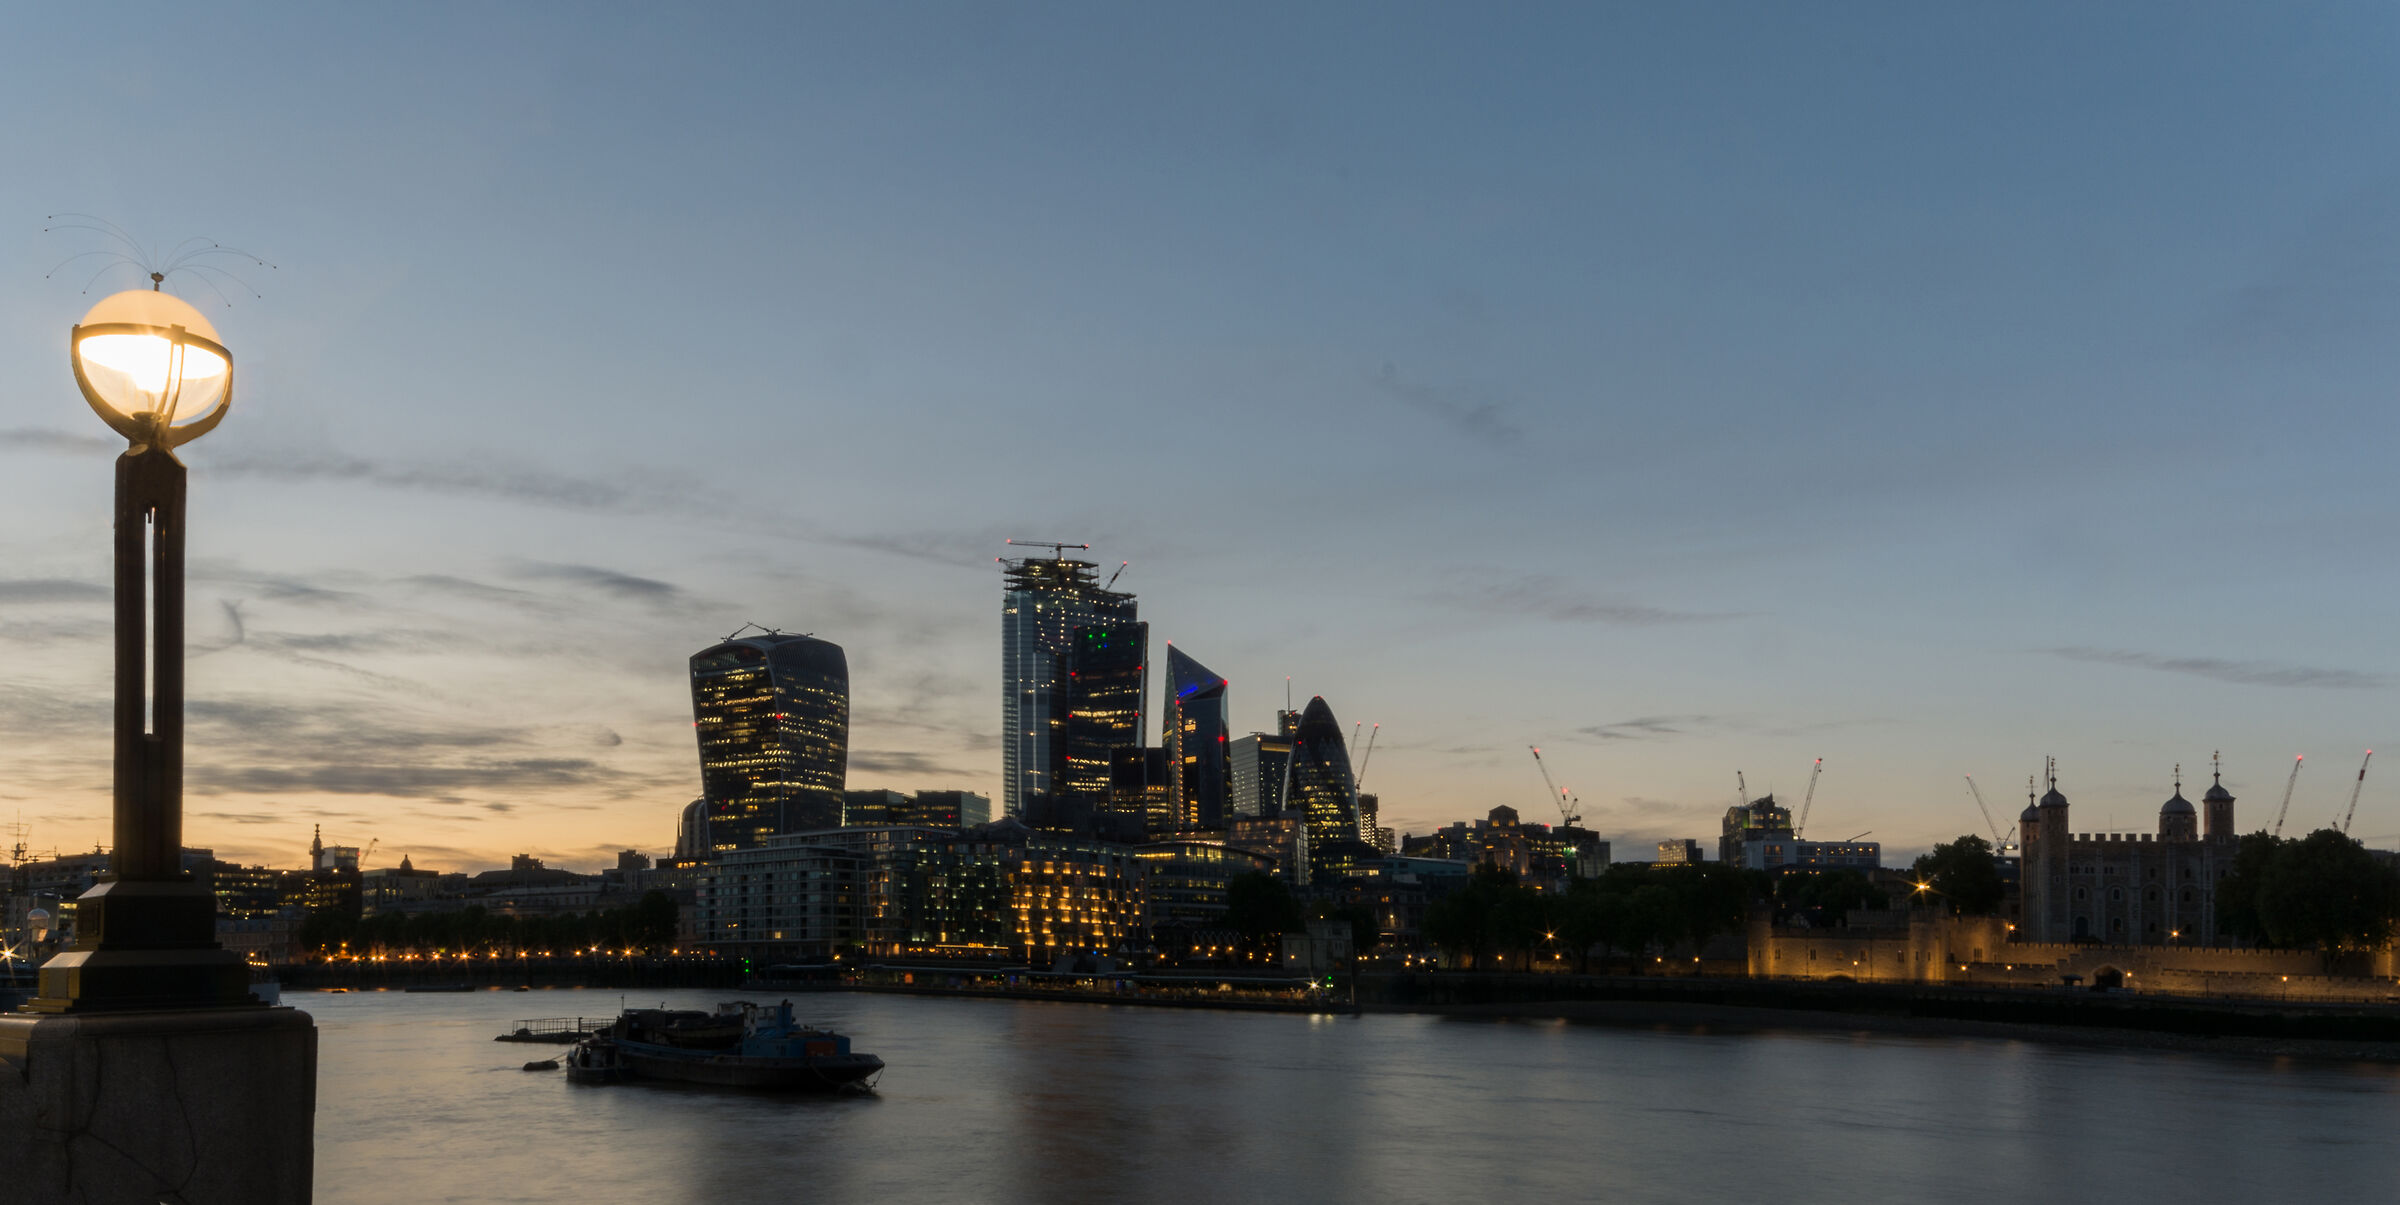 The city from the Thames...